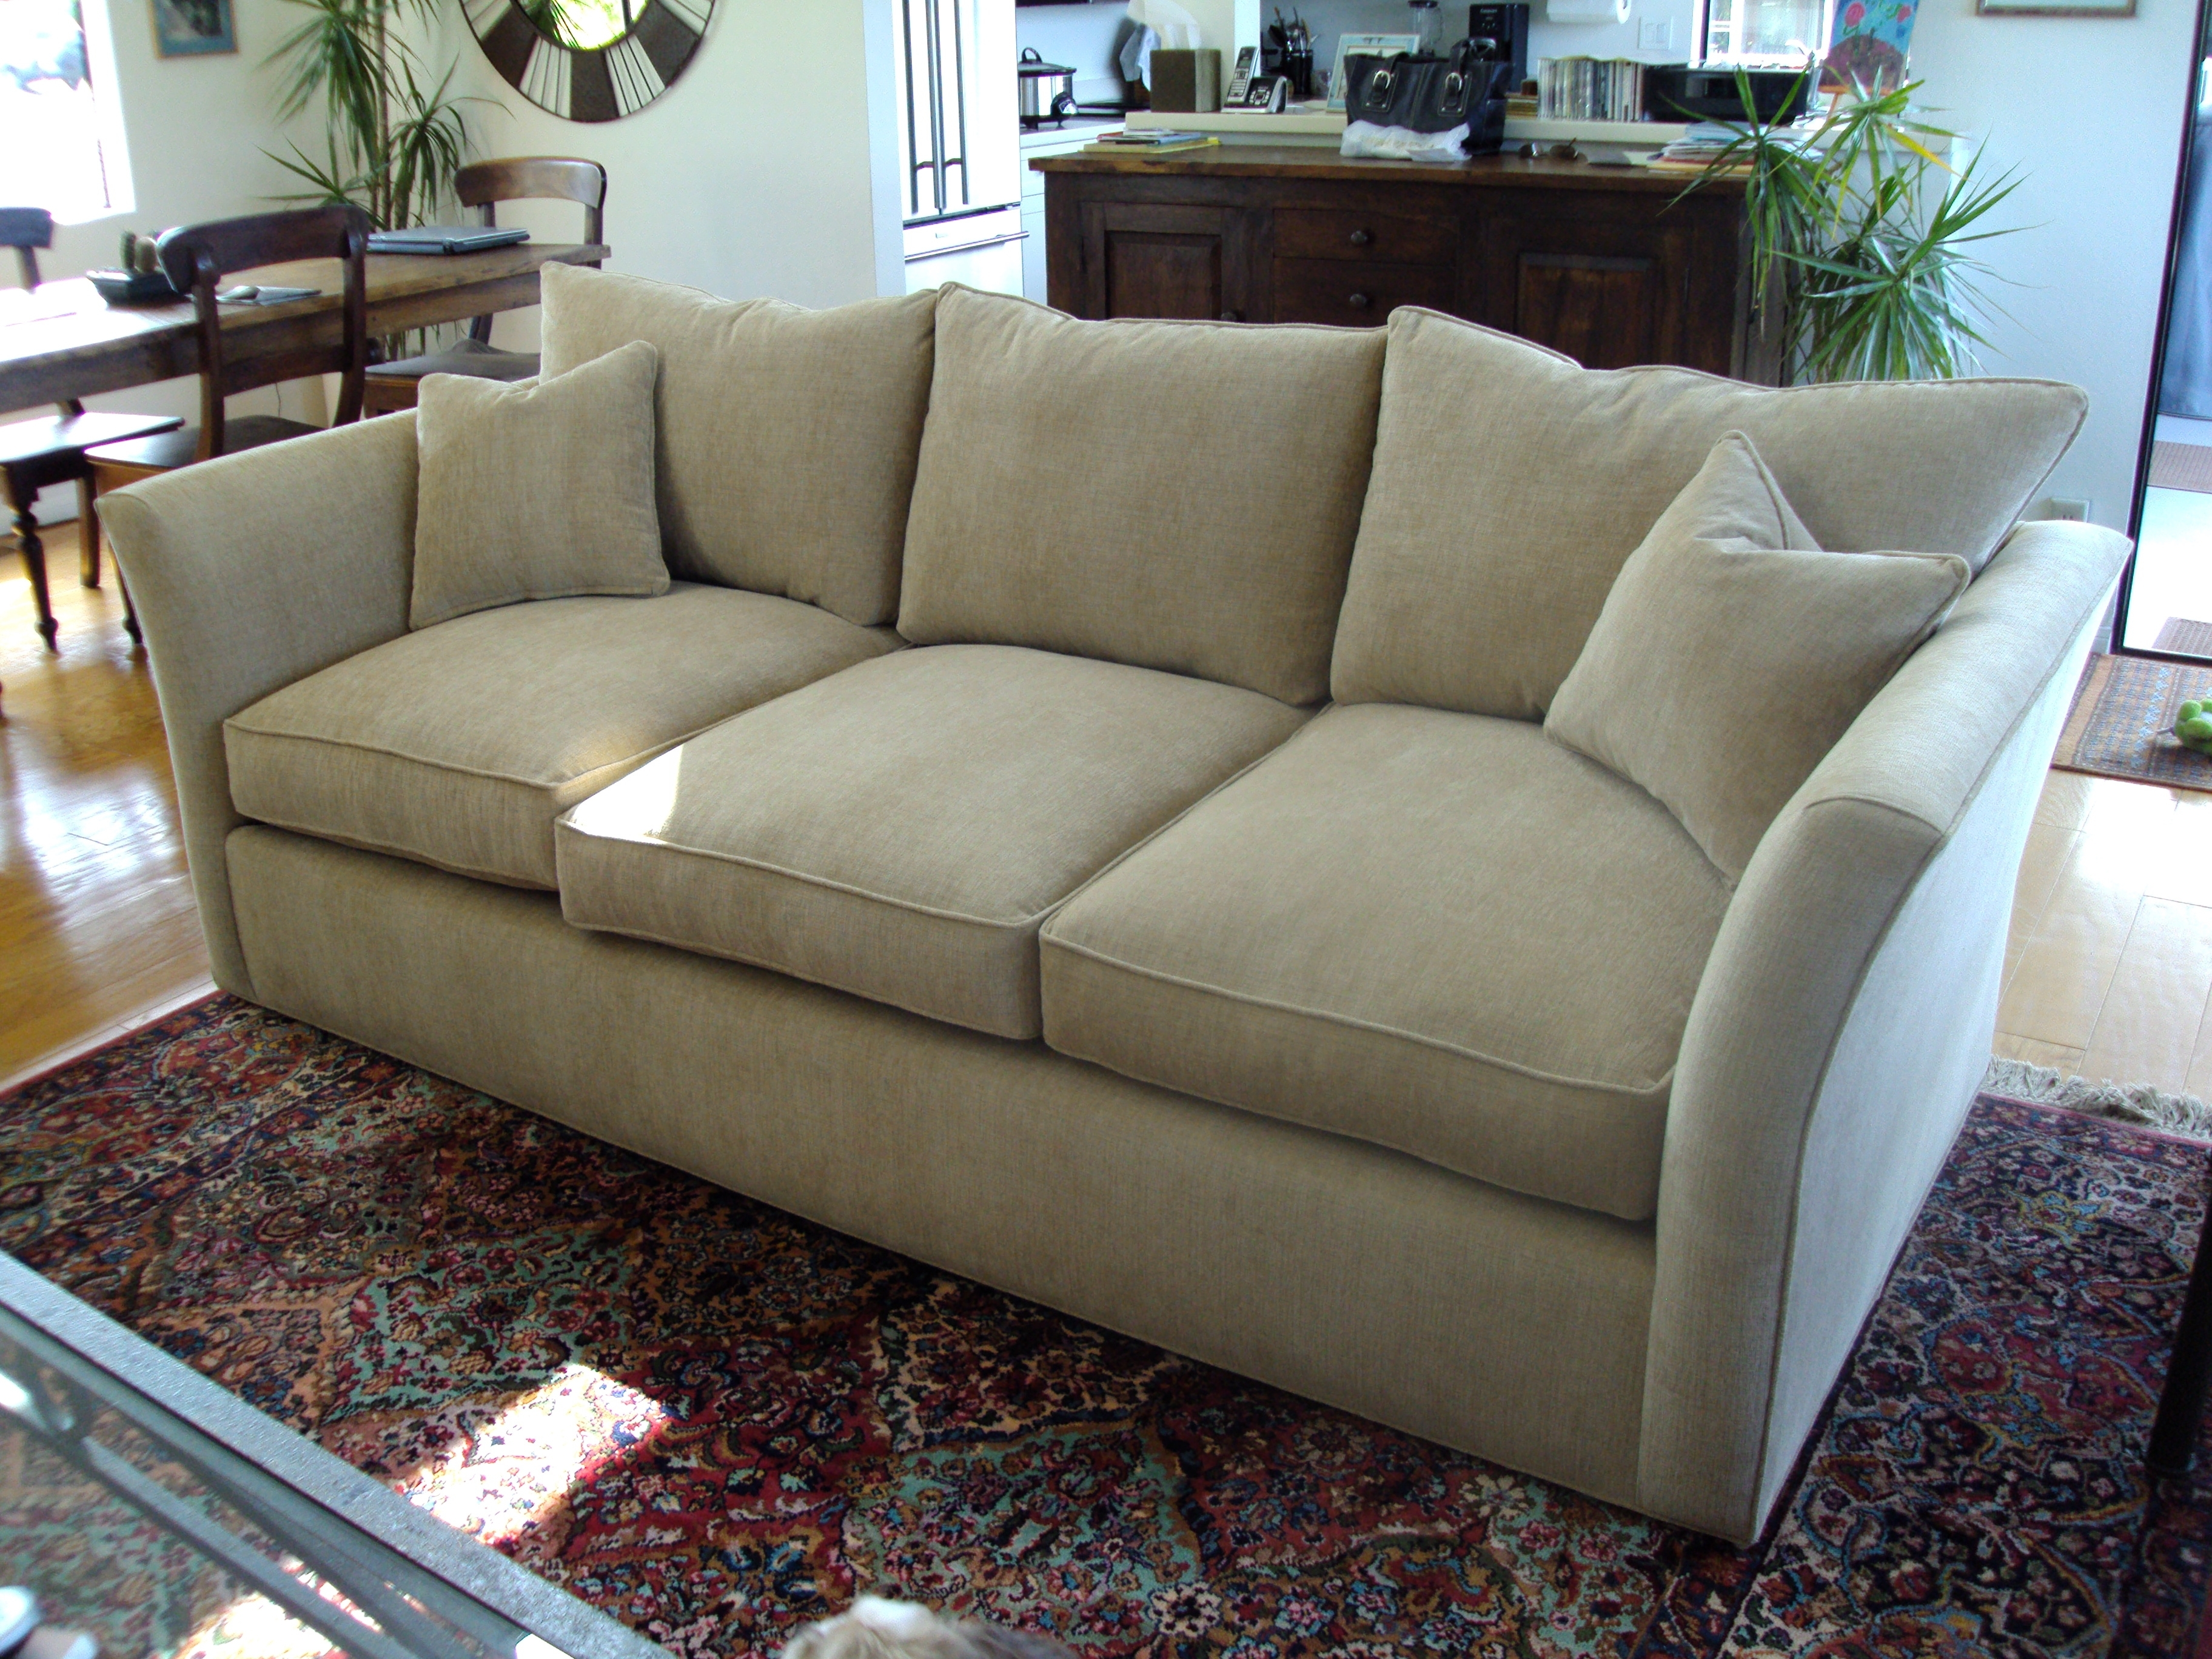 Attractive Reupholstering A Sectional Sofa 67 For Sectional Sofas Throughout North Carolina Sectional Sofas (View 7 of 10)